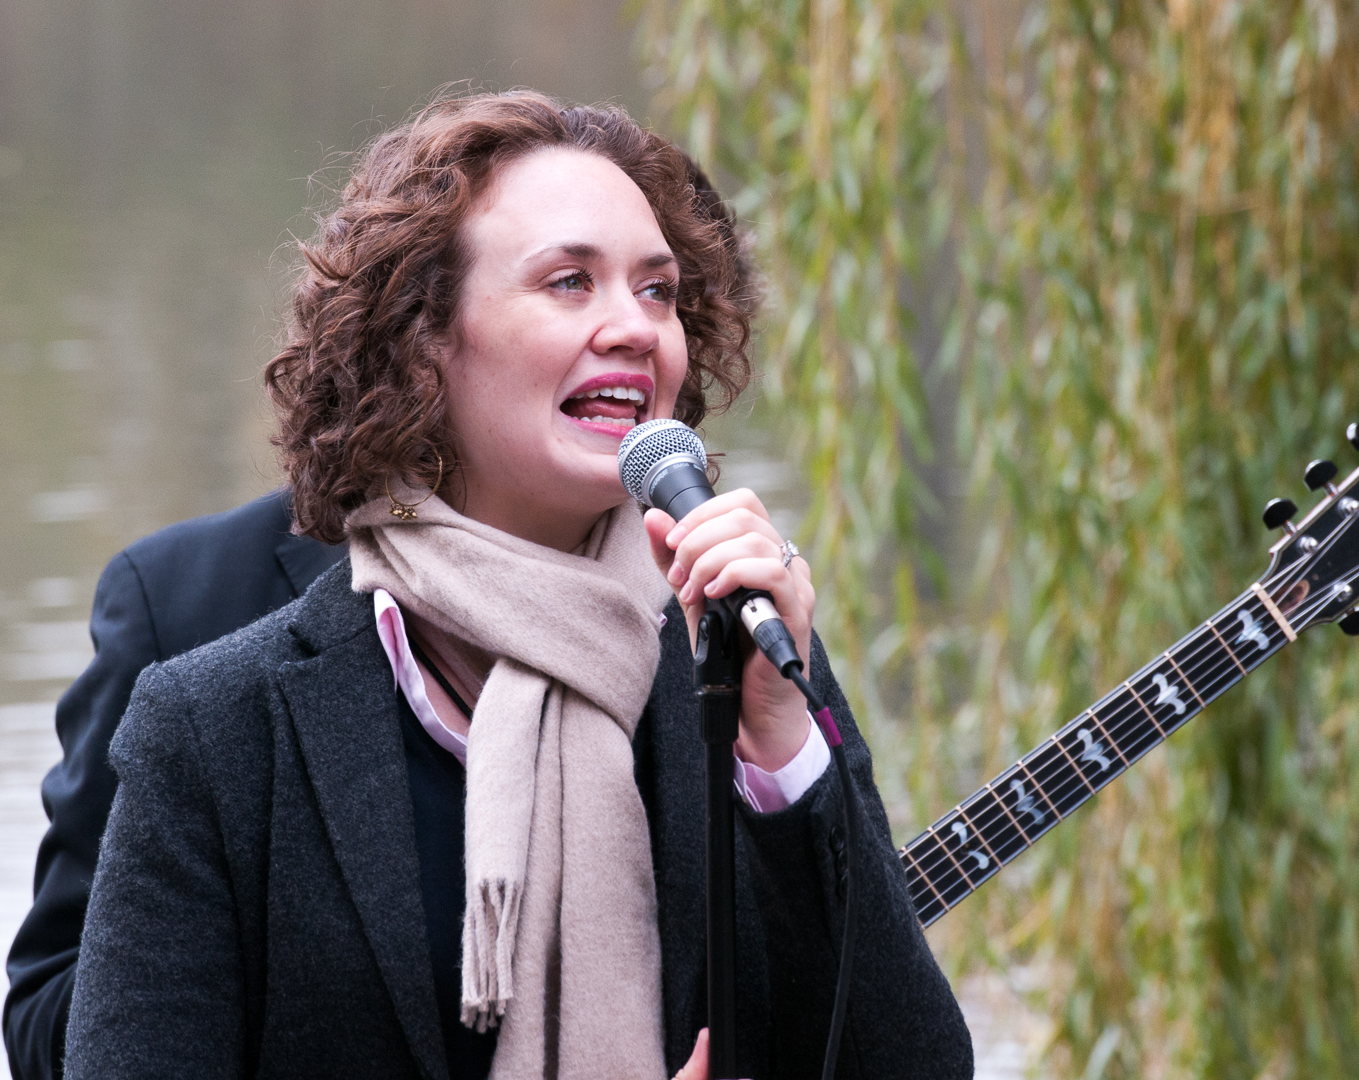 Haley Gardner with the Jason Marshall Quartet at Jazz and Colors in Central Park